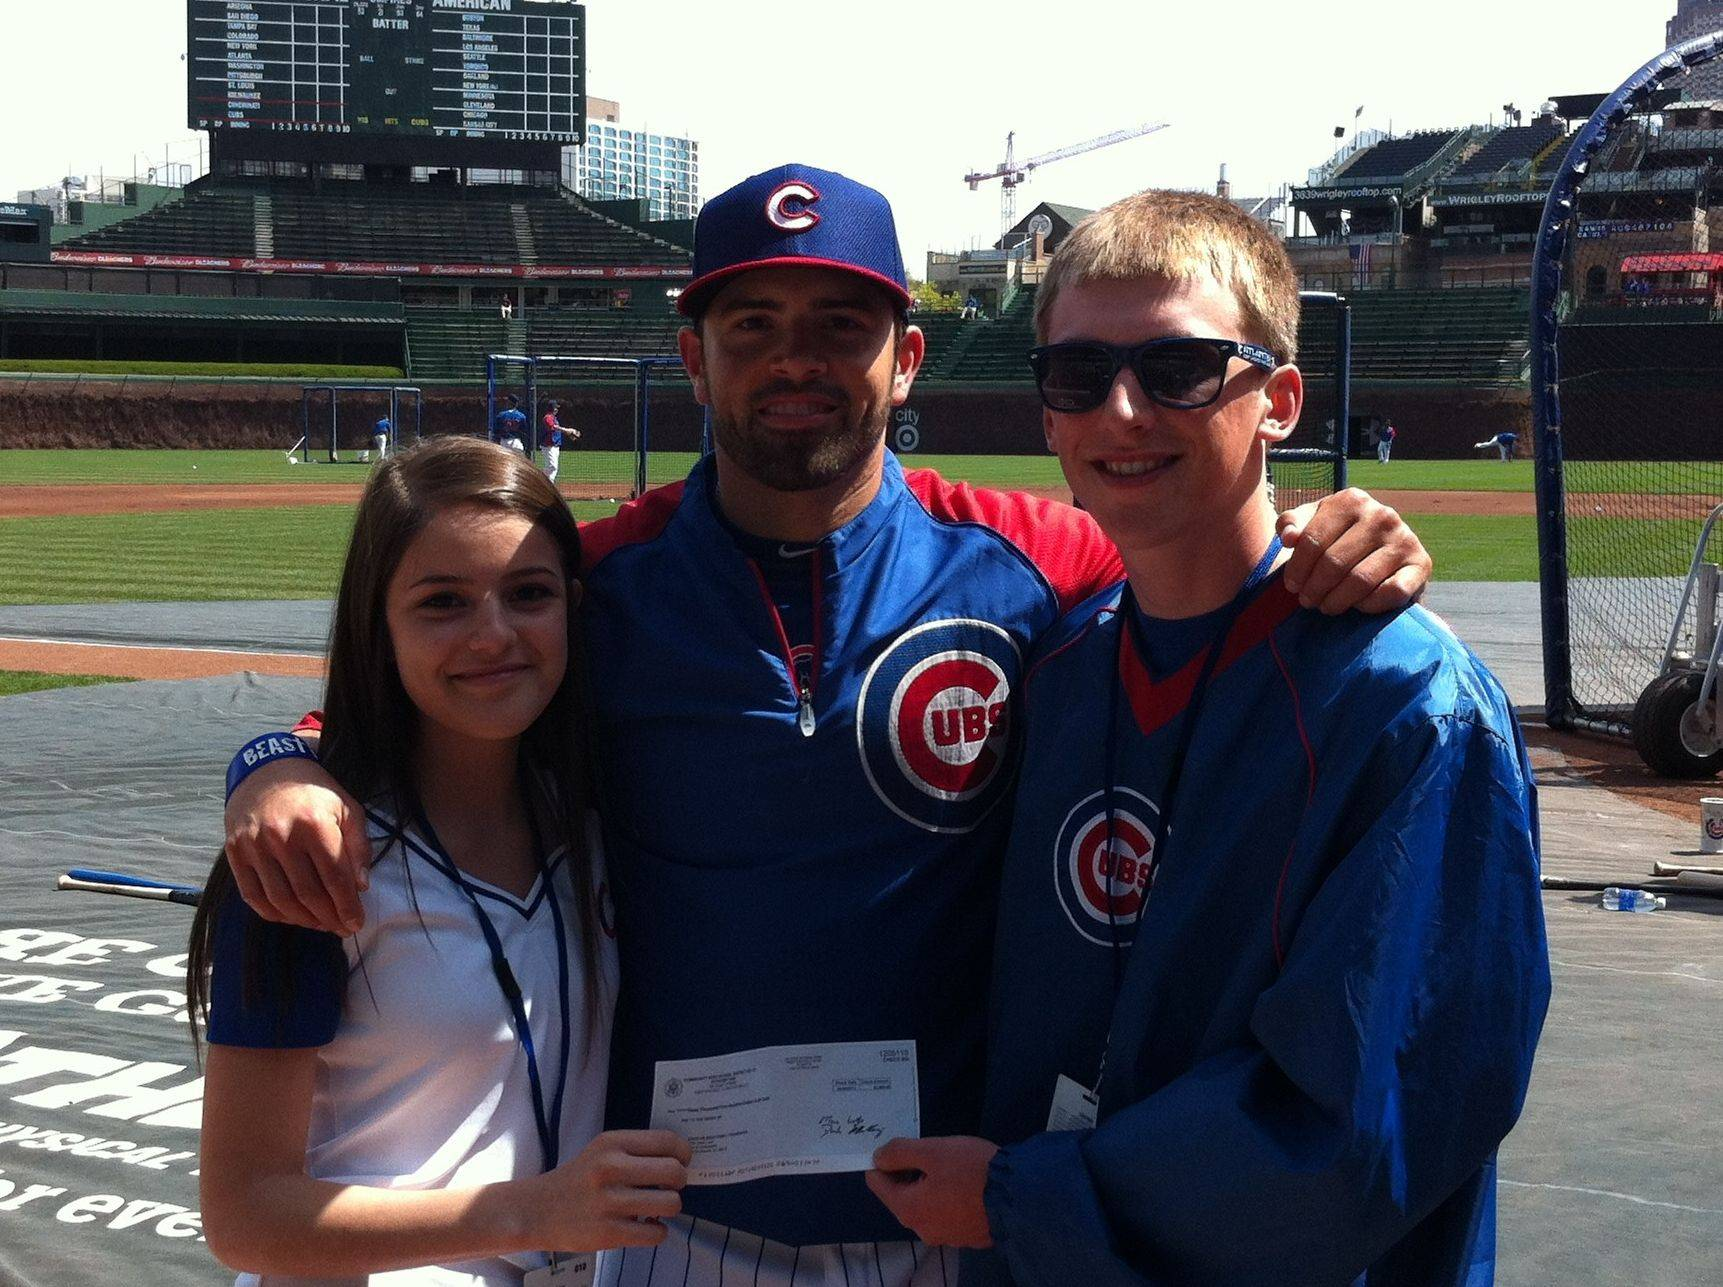 Chicago Cubs outfielder David DeJesus poses with West Chicago students Luci Diaz, left, and Kyle Nielson, right, after they presented DeJesus with a $3,500 check for his charitable foundation.